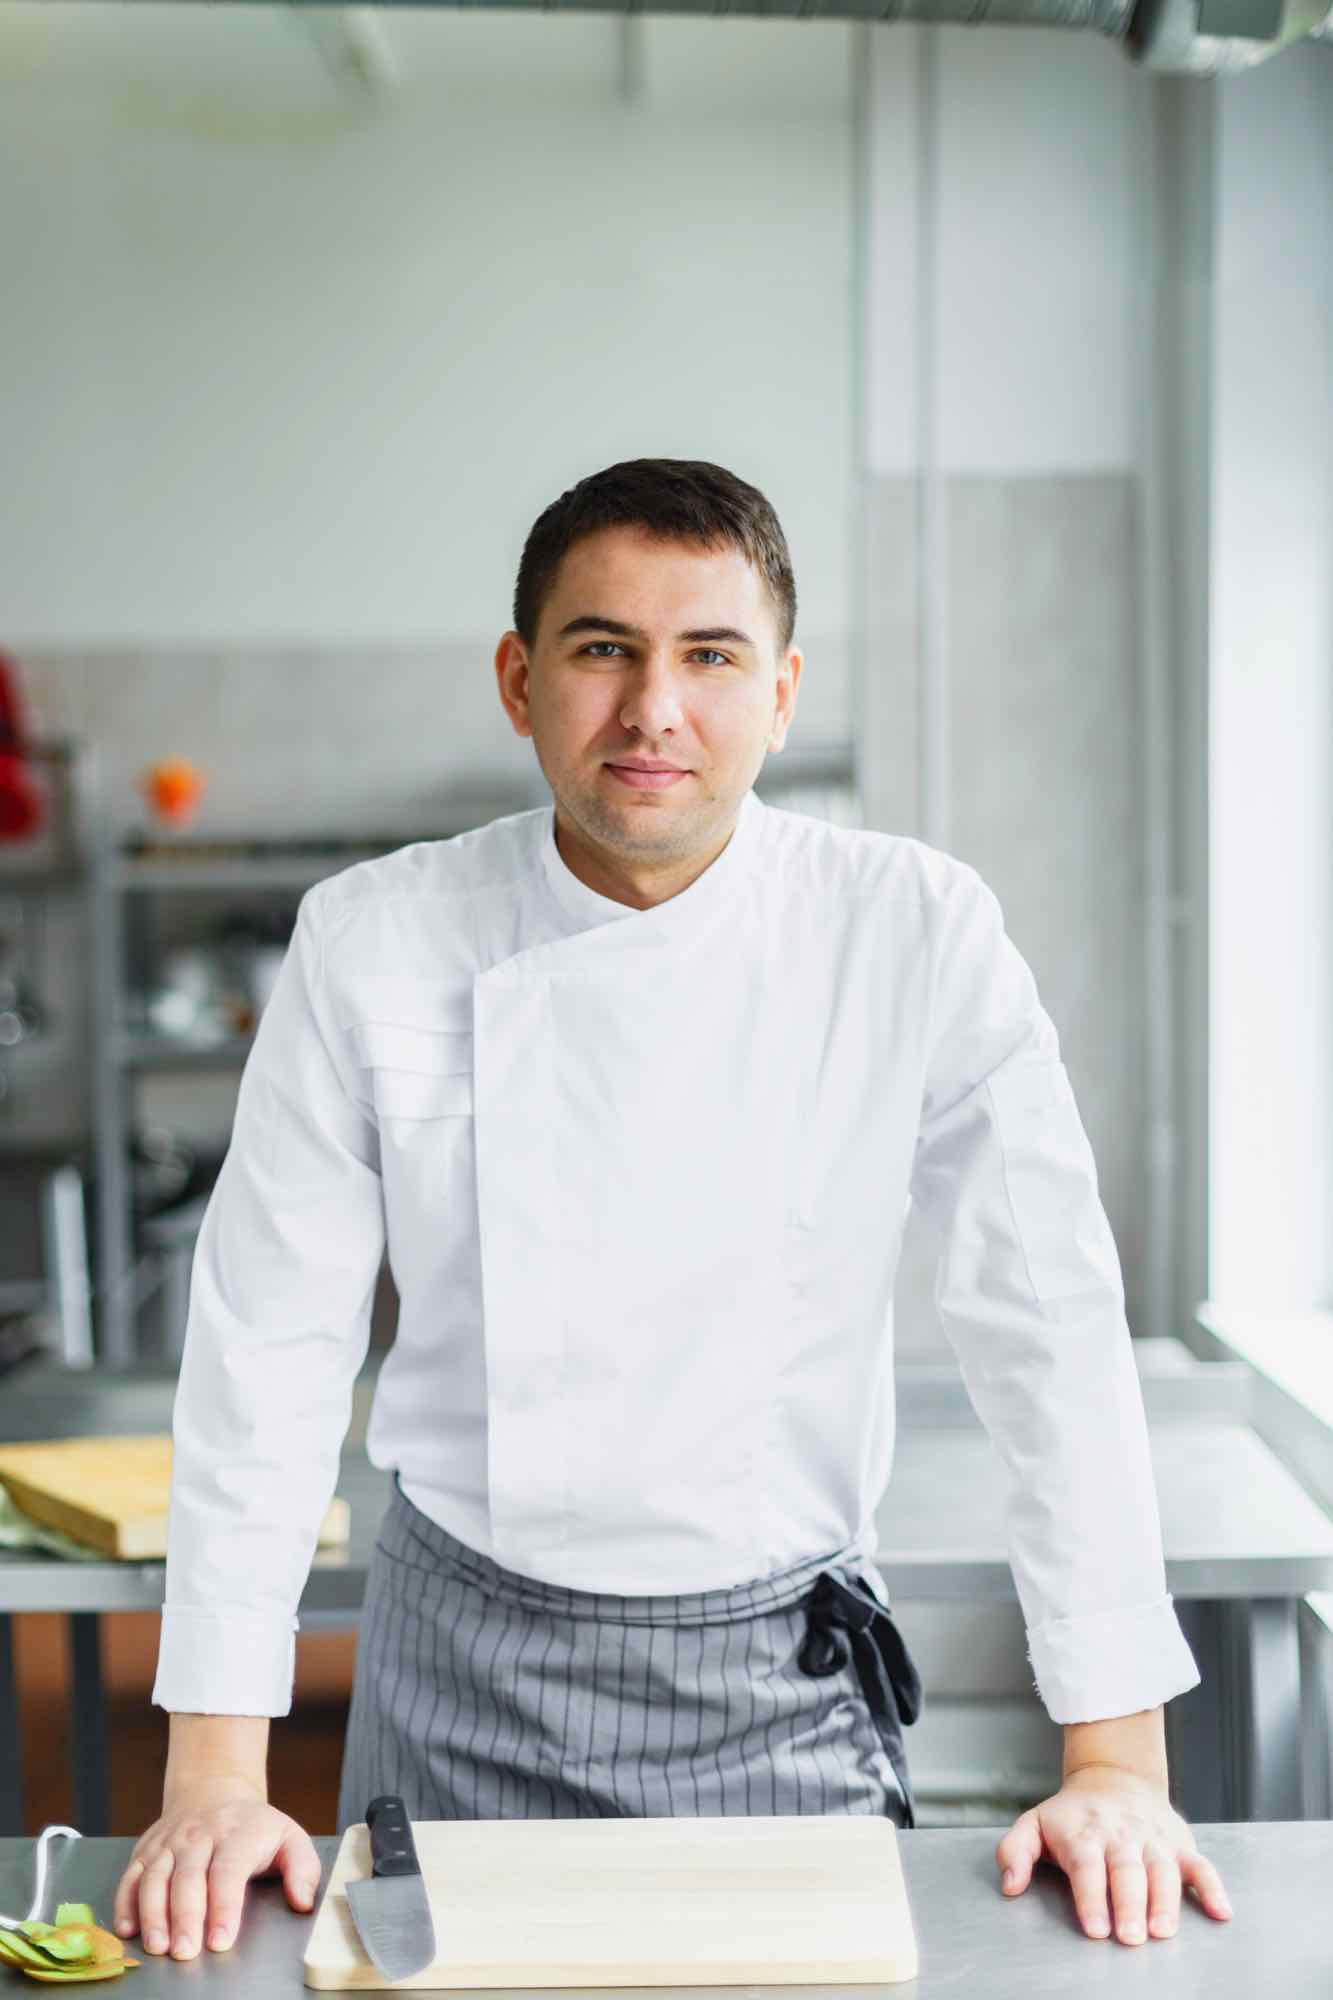 young-smiling-male-chef-posing-PDEM7CR.jpg